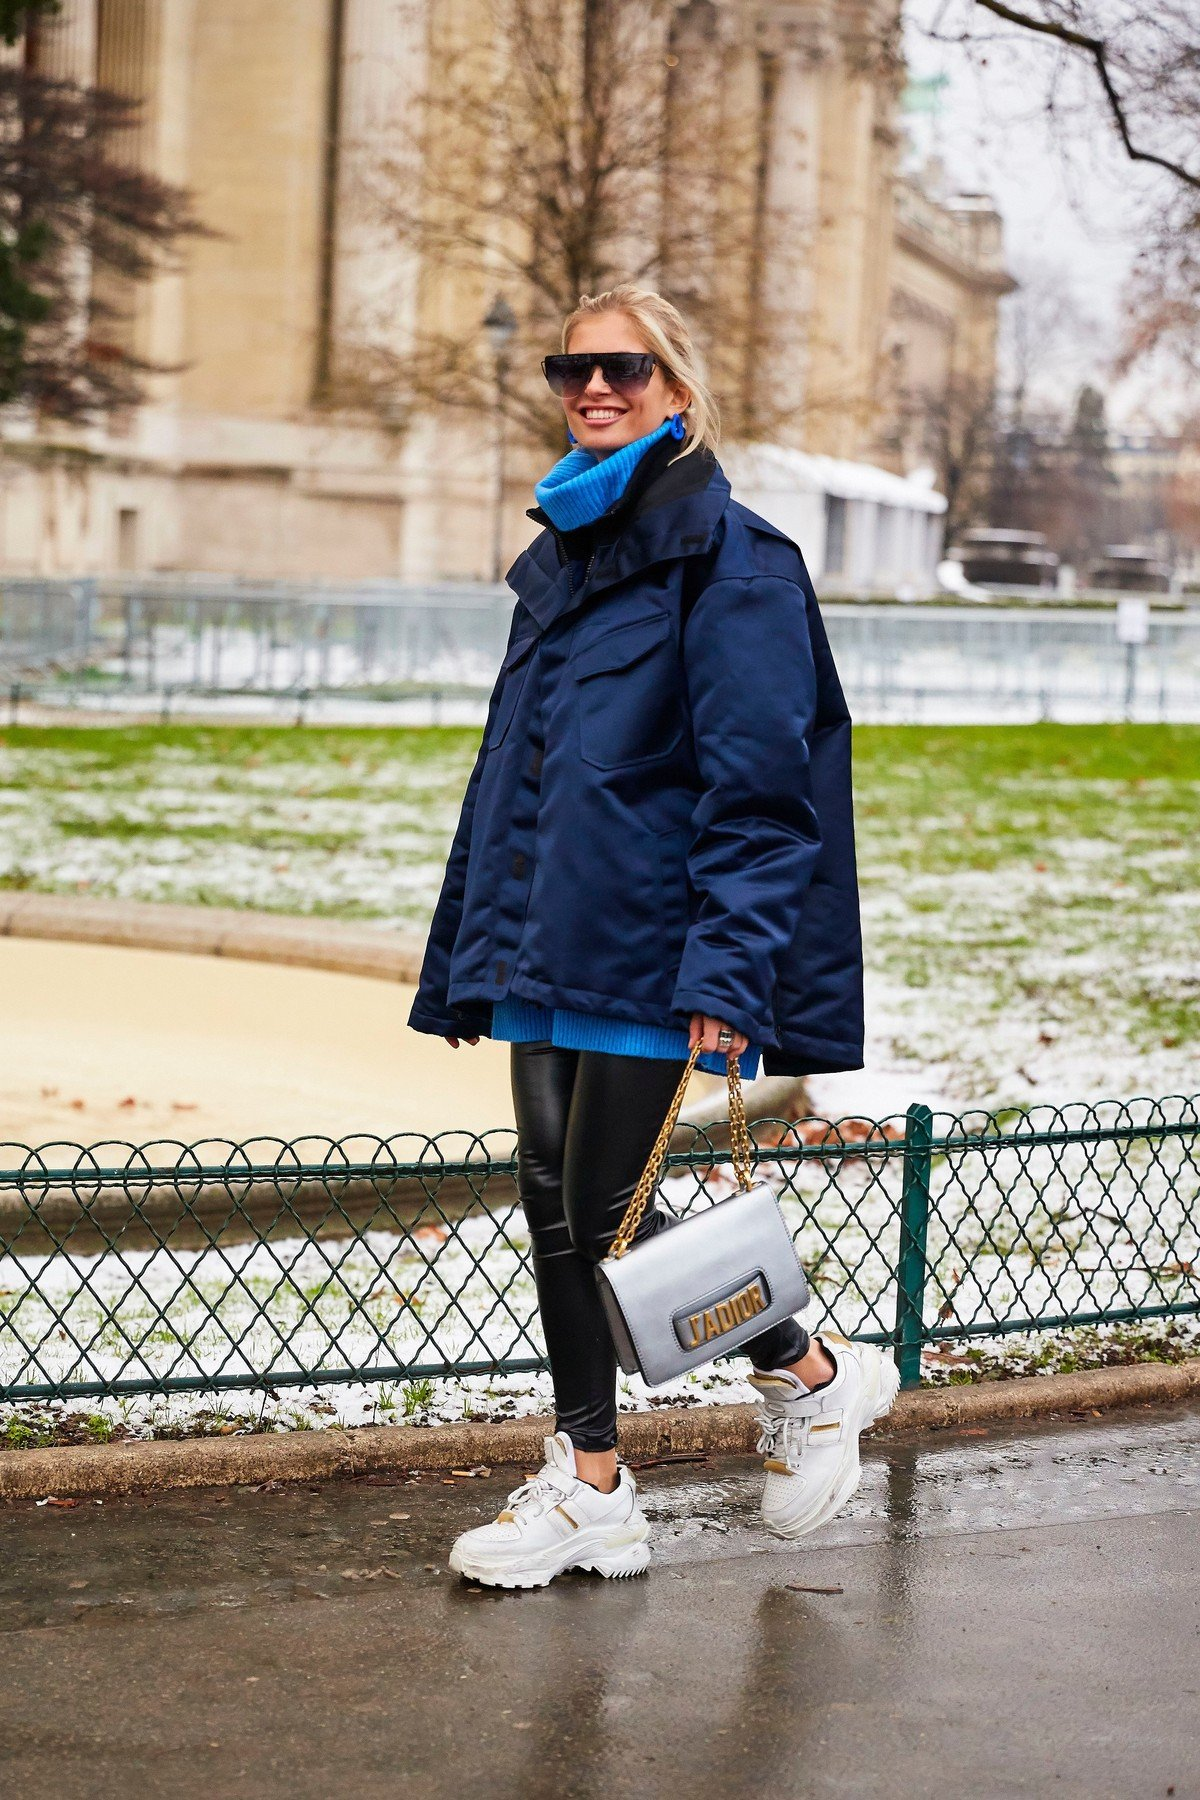 Street Style Street Style Spring Summer 2019, Haute Couture Fashion Week, Paris,  France - 22 Jan 2019, Image: 409462090, License: Rights-managed, Restrictions: , Model Release: no, Credit line: Profimedia, TEMP Rex Features